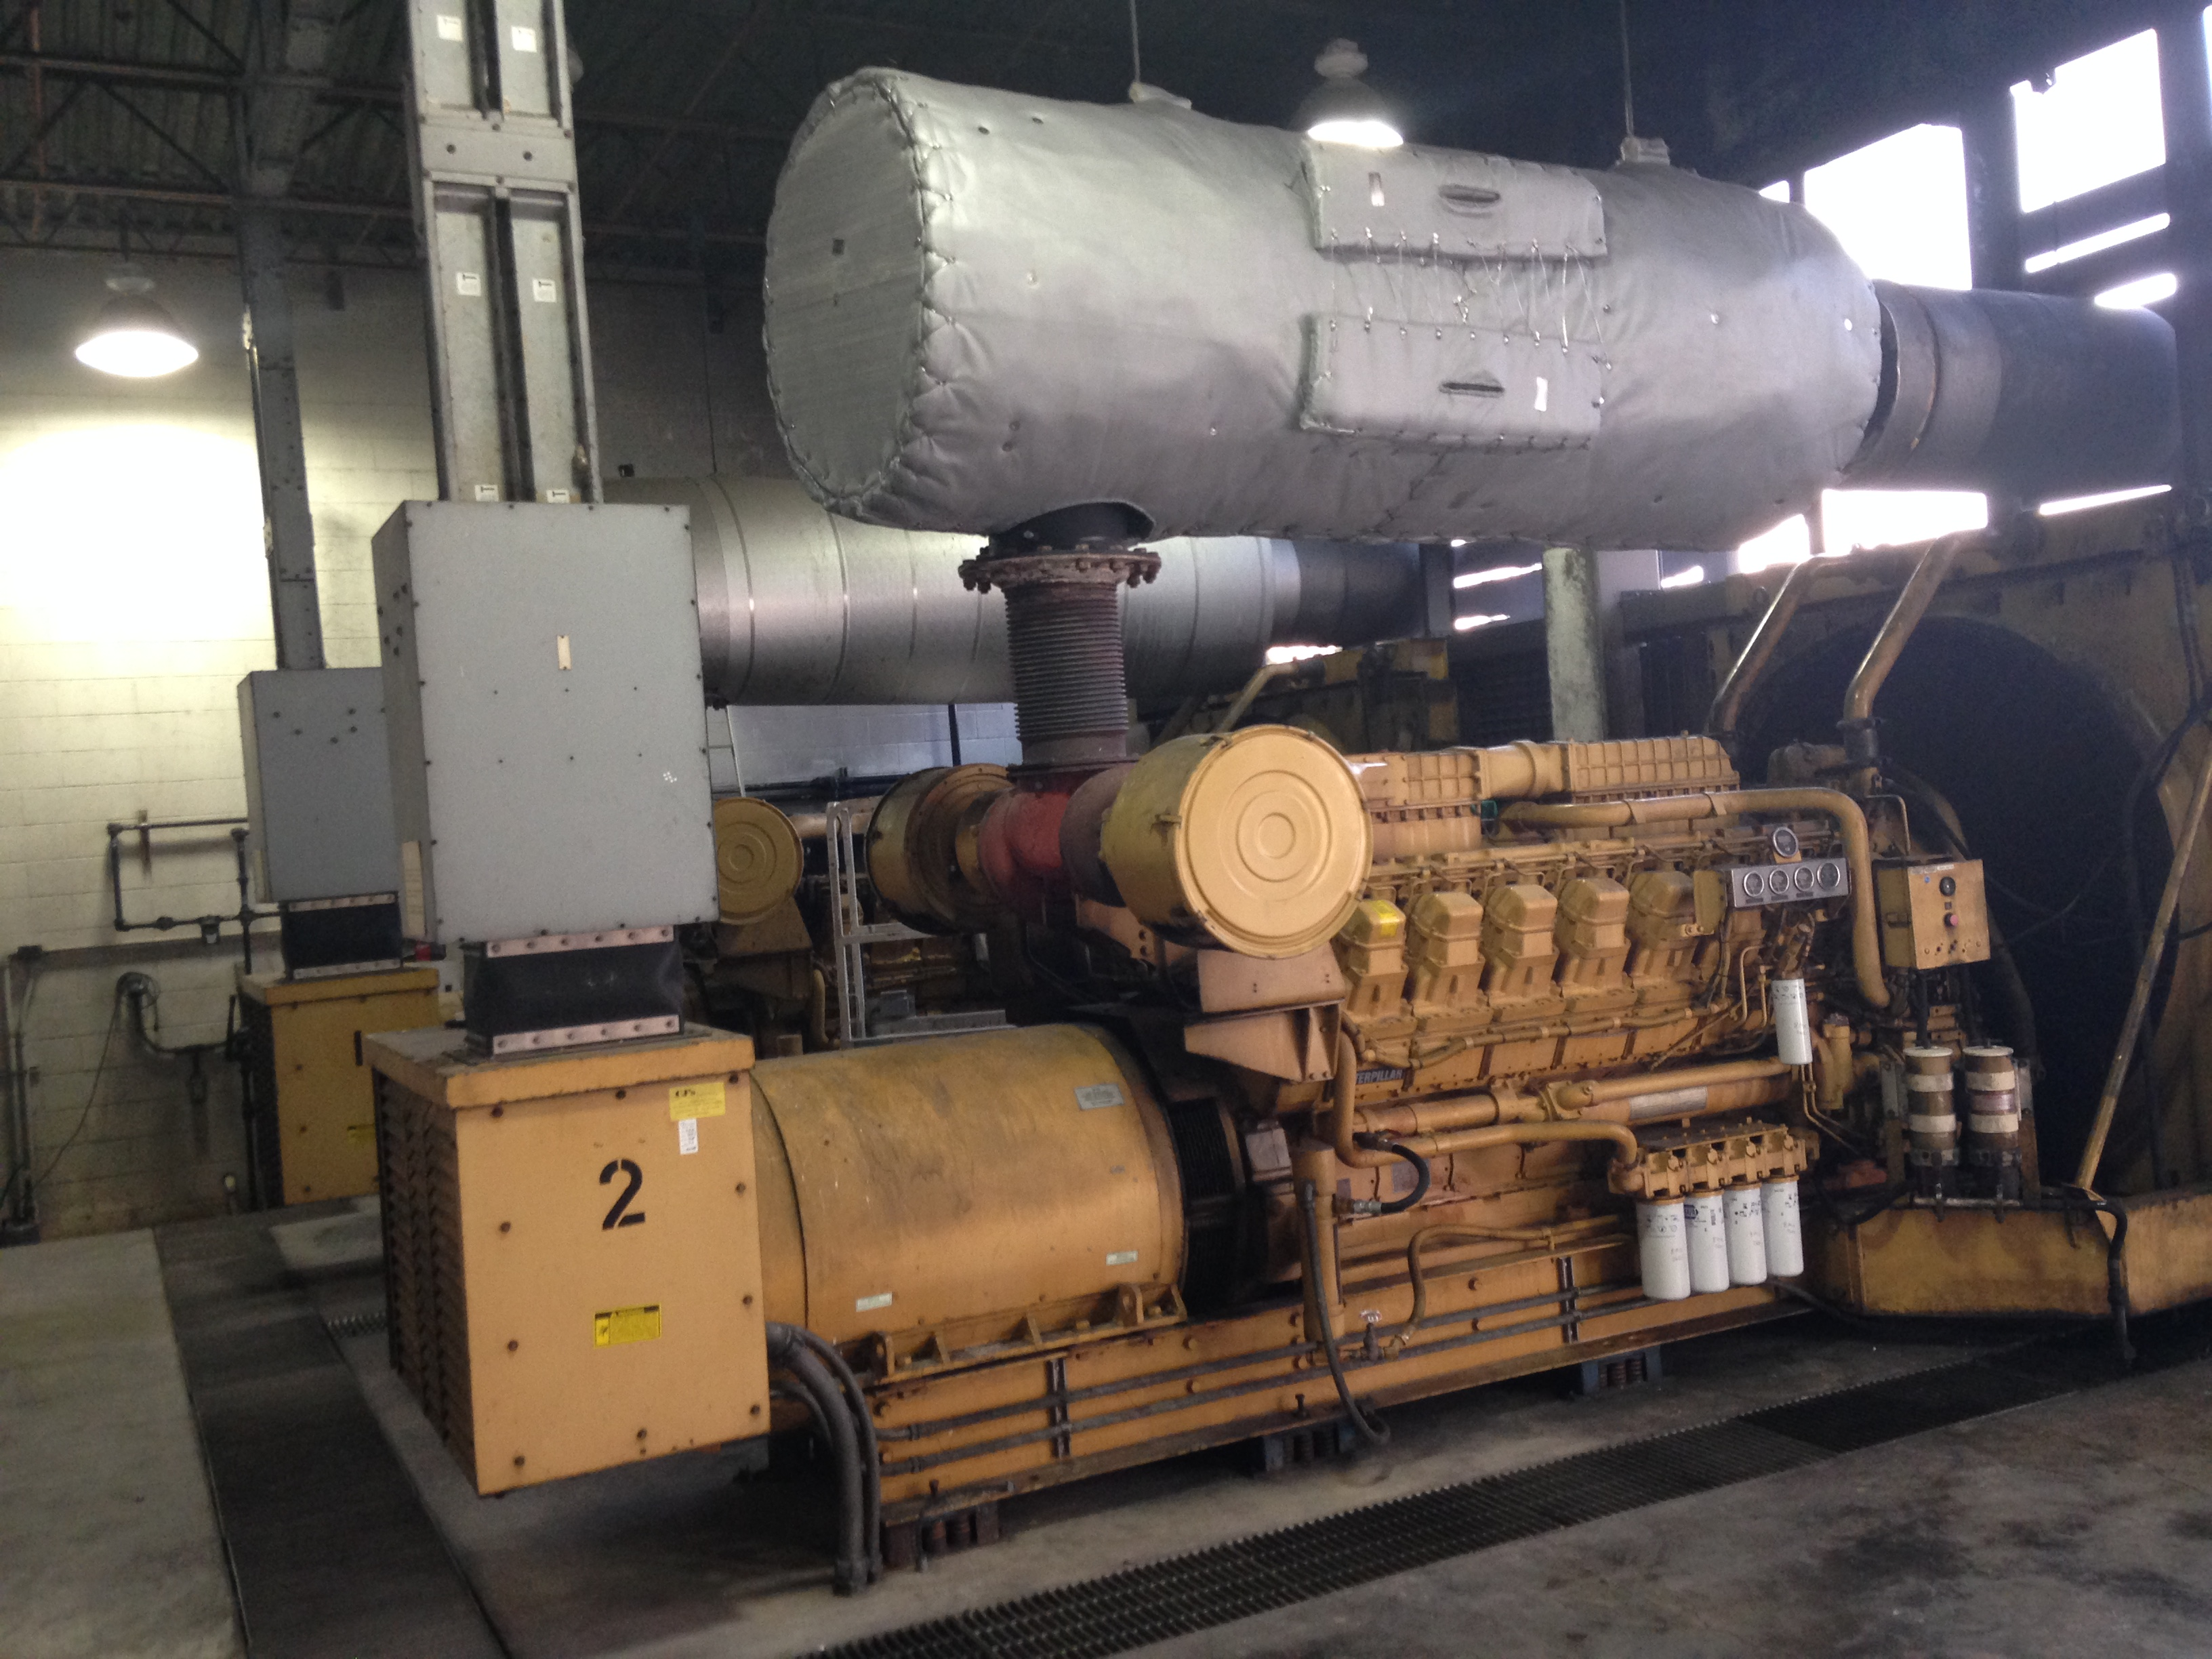 Mid Florida Diesel Projects: Installing New Catalyst on Caterpillar 3508 and 3516 Engines